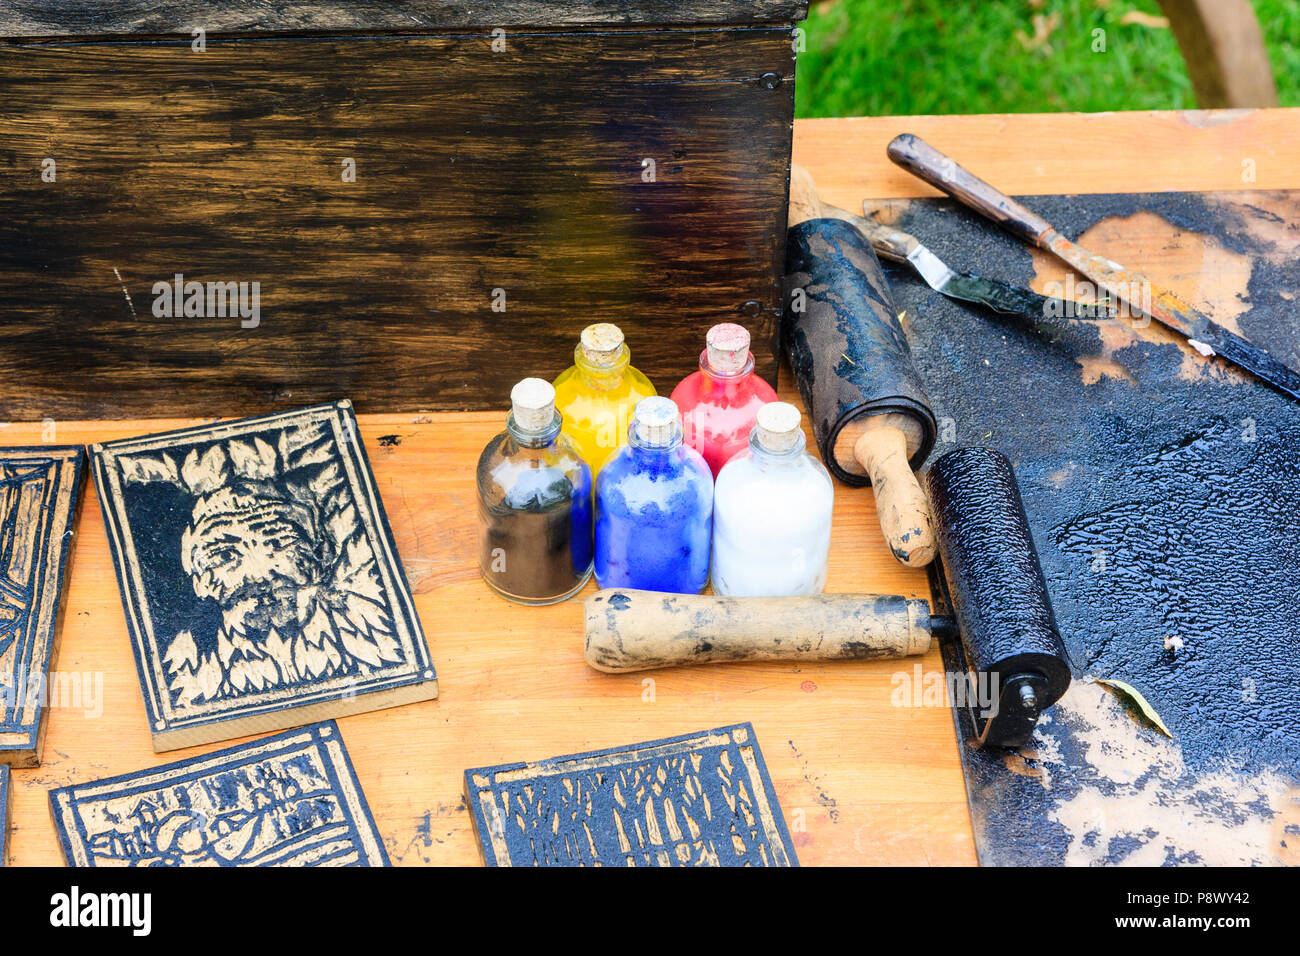 Re-enactment, living history. Medieval re construction of printing, woodblock prints and bottles of coloured inks on table. - Stock Image